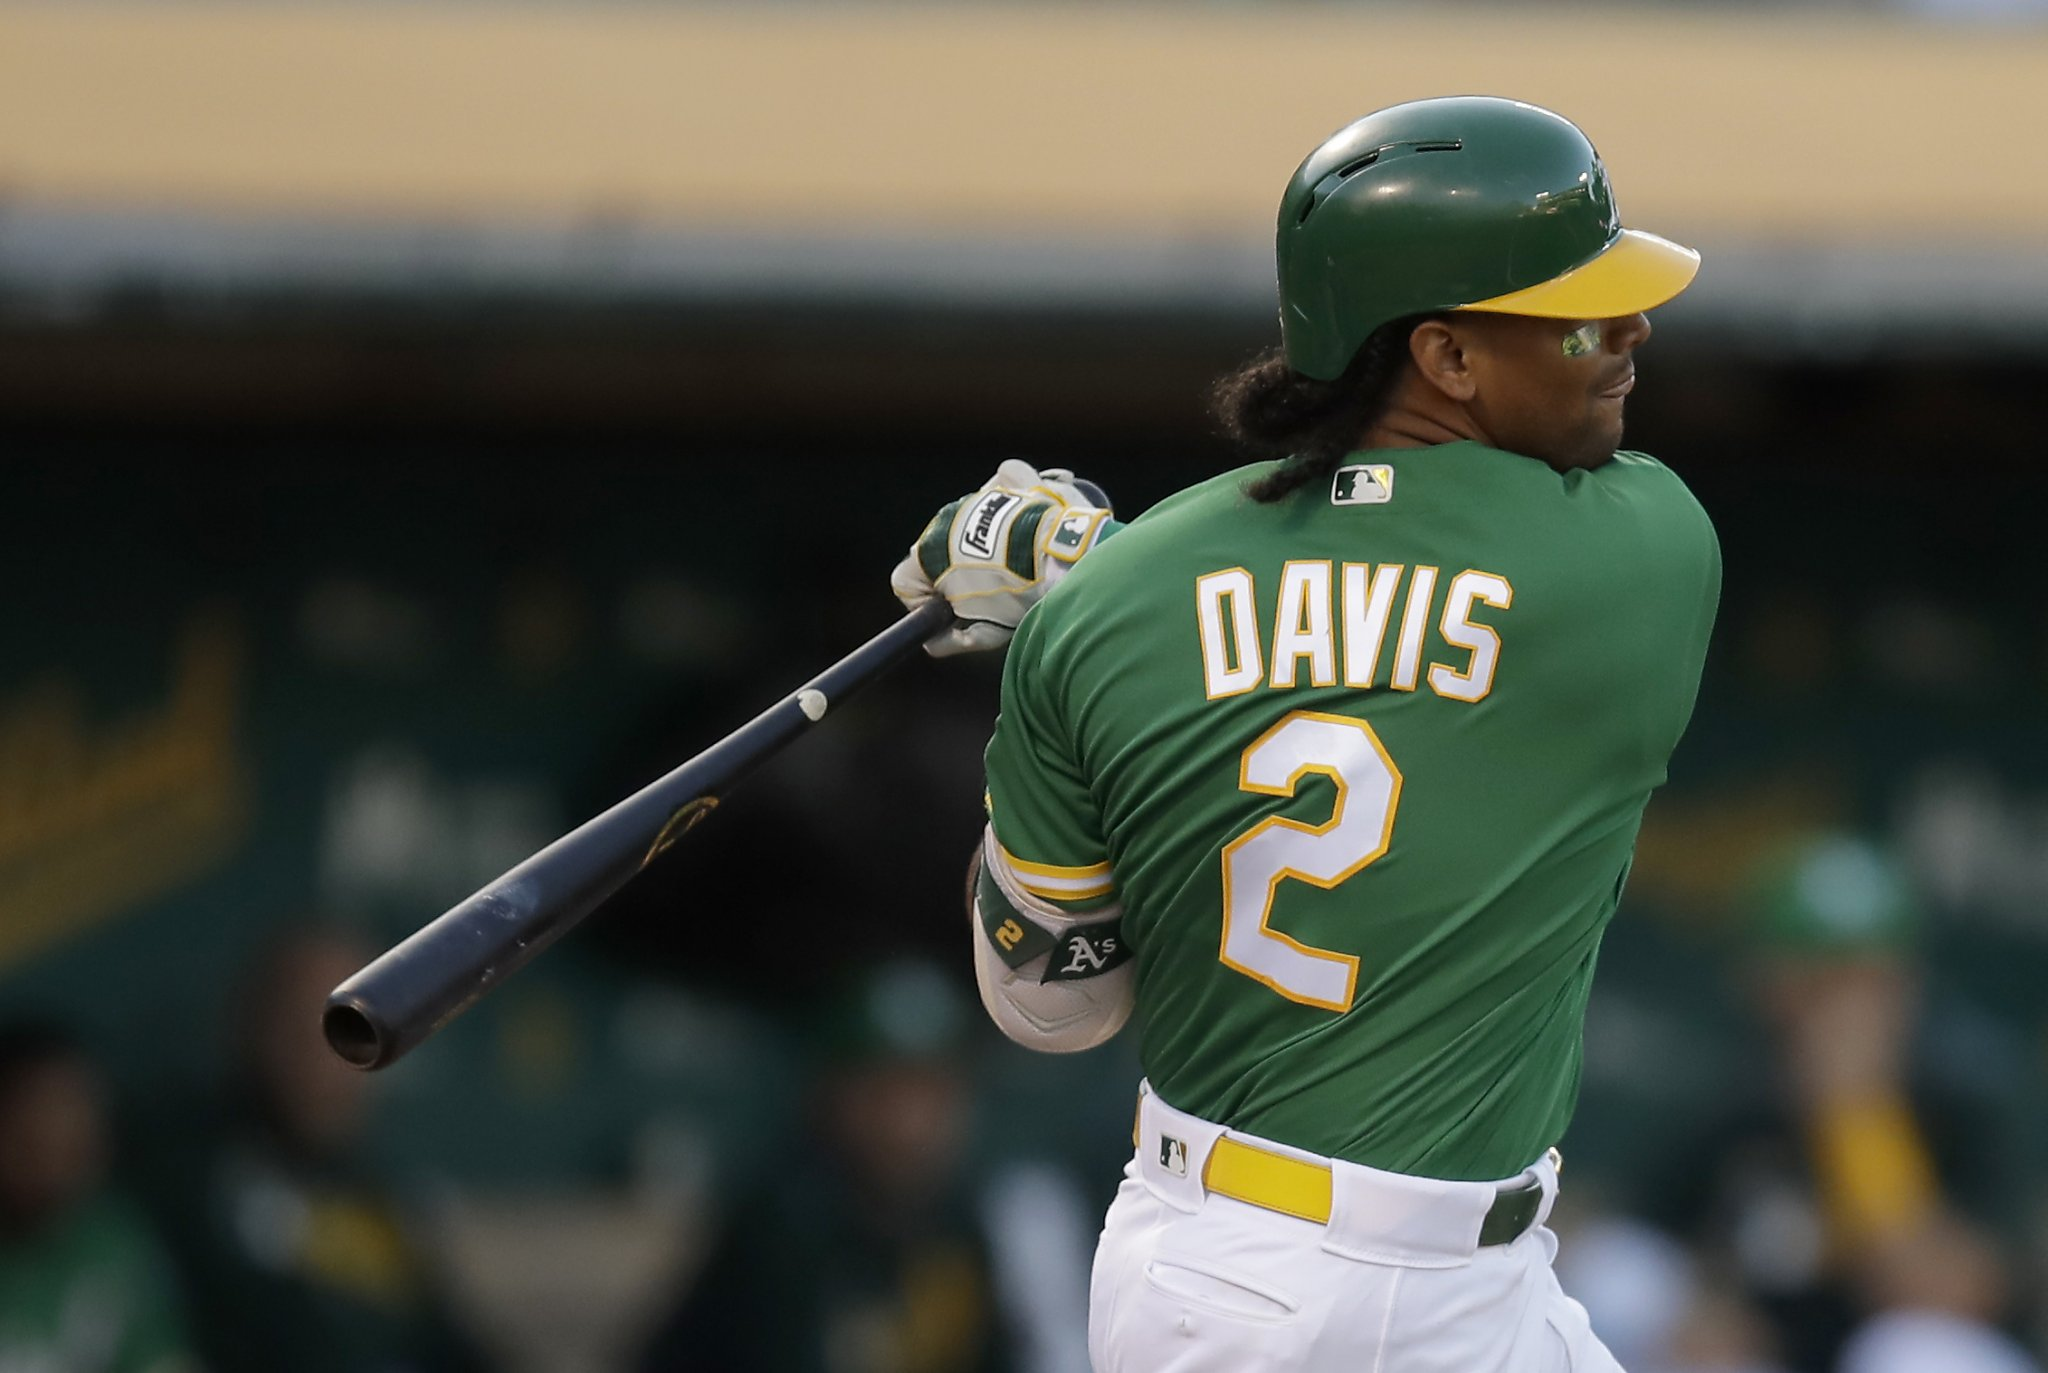 Minor calf issue keeps A's Khris Davis out a few days; he says feels fine